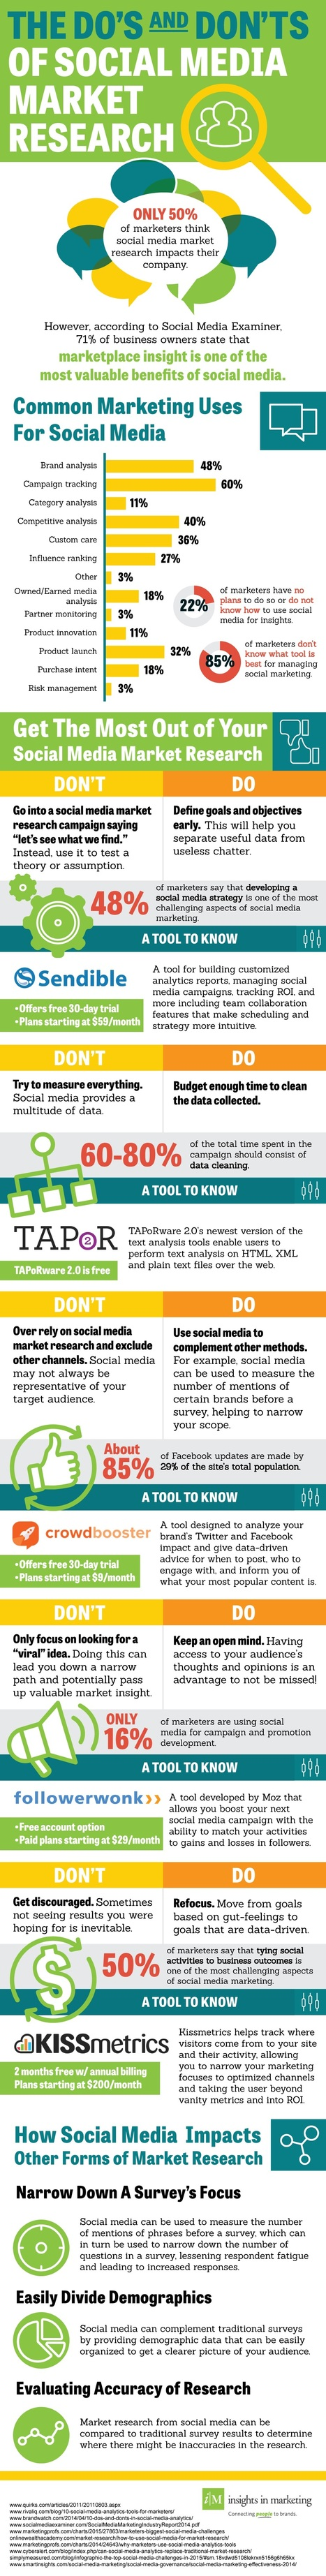 5 Ways to Use Social Media for Market Research #Infographic | MarketingHits | Scoop.it